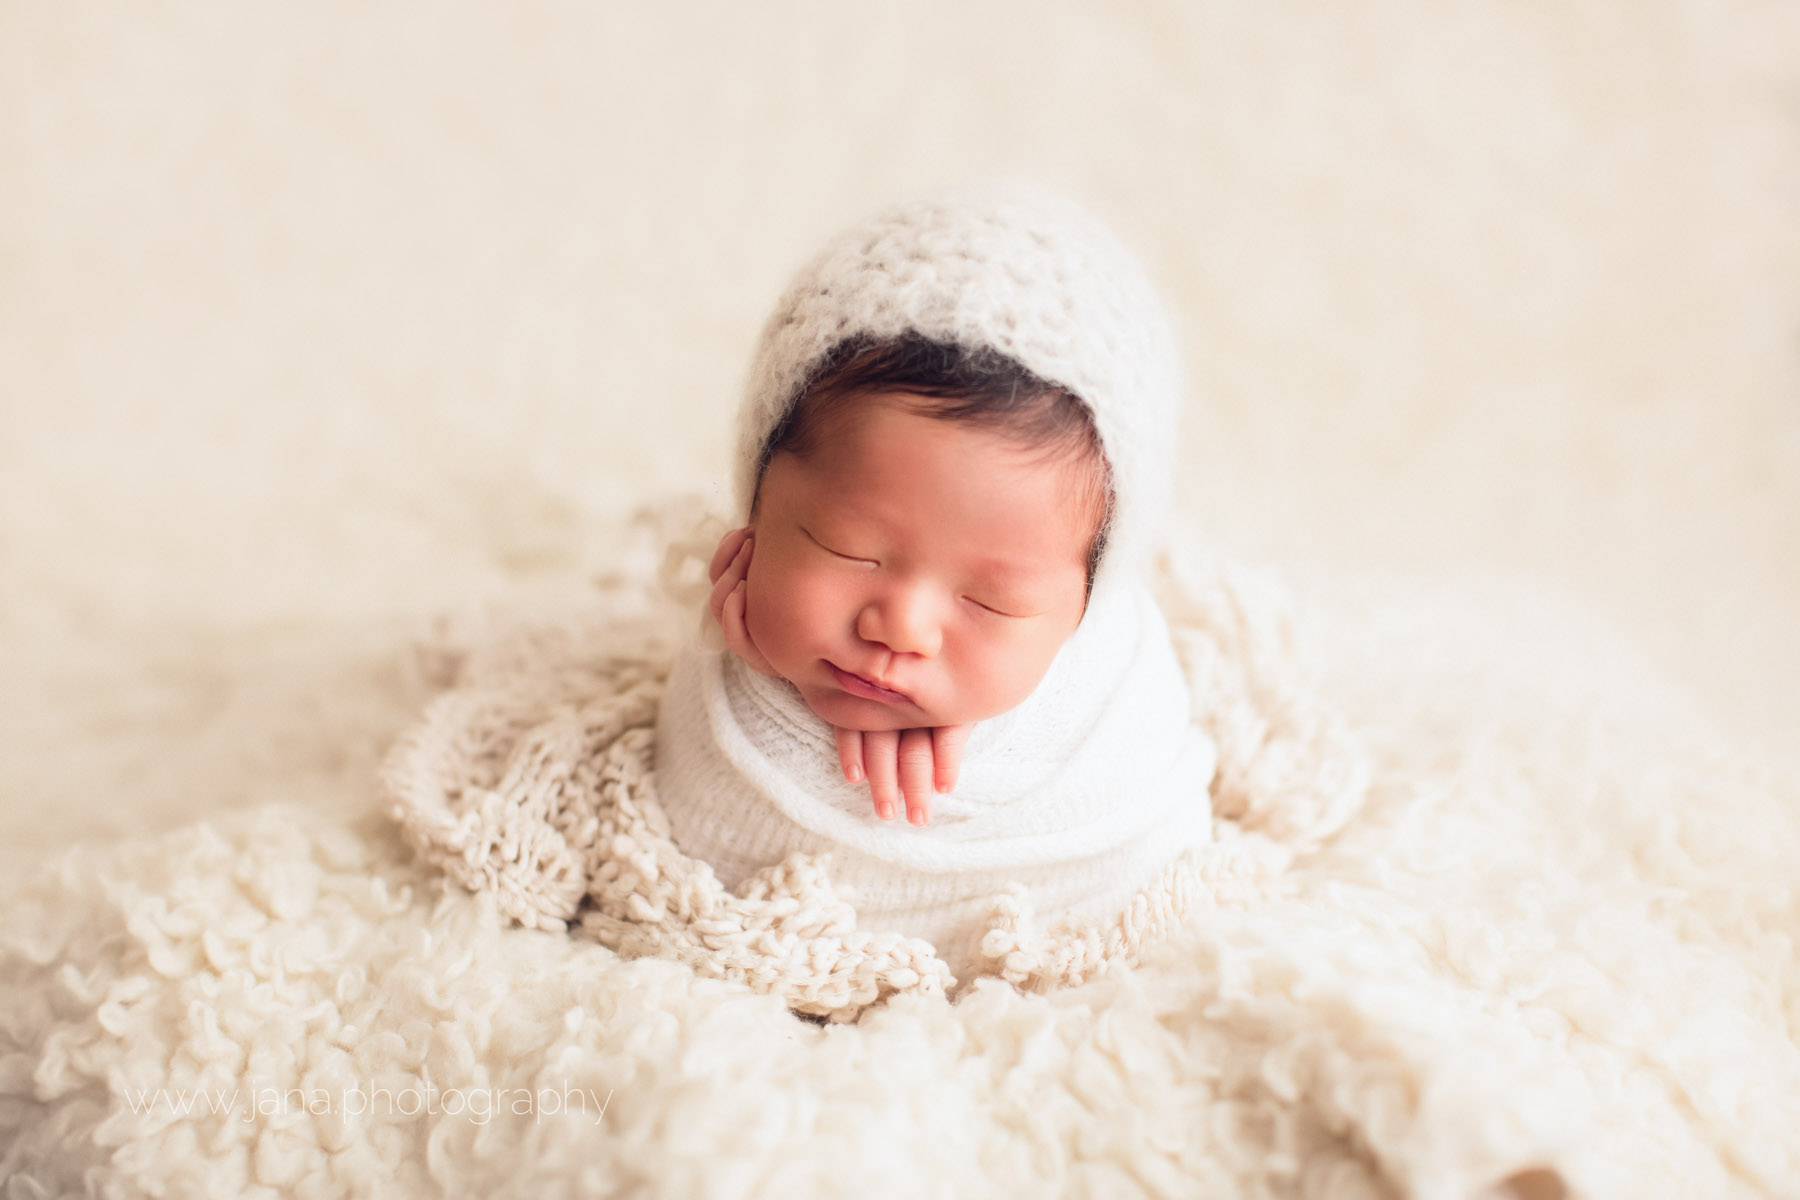 Newborn photography - white hat